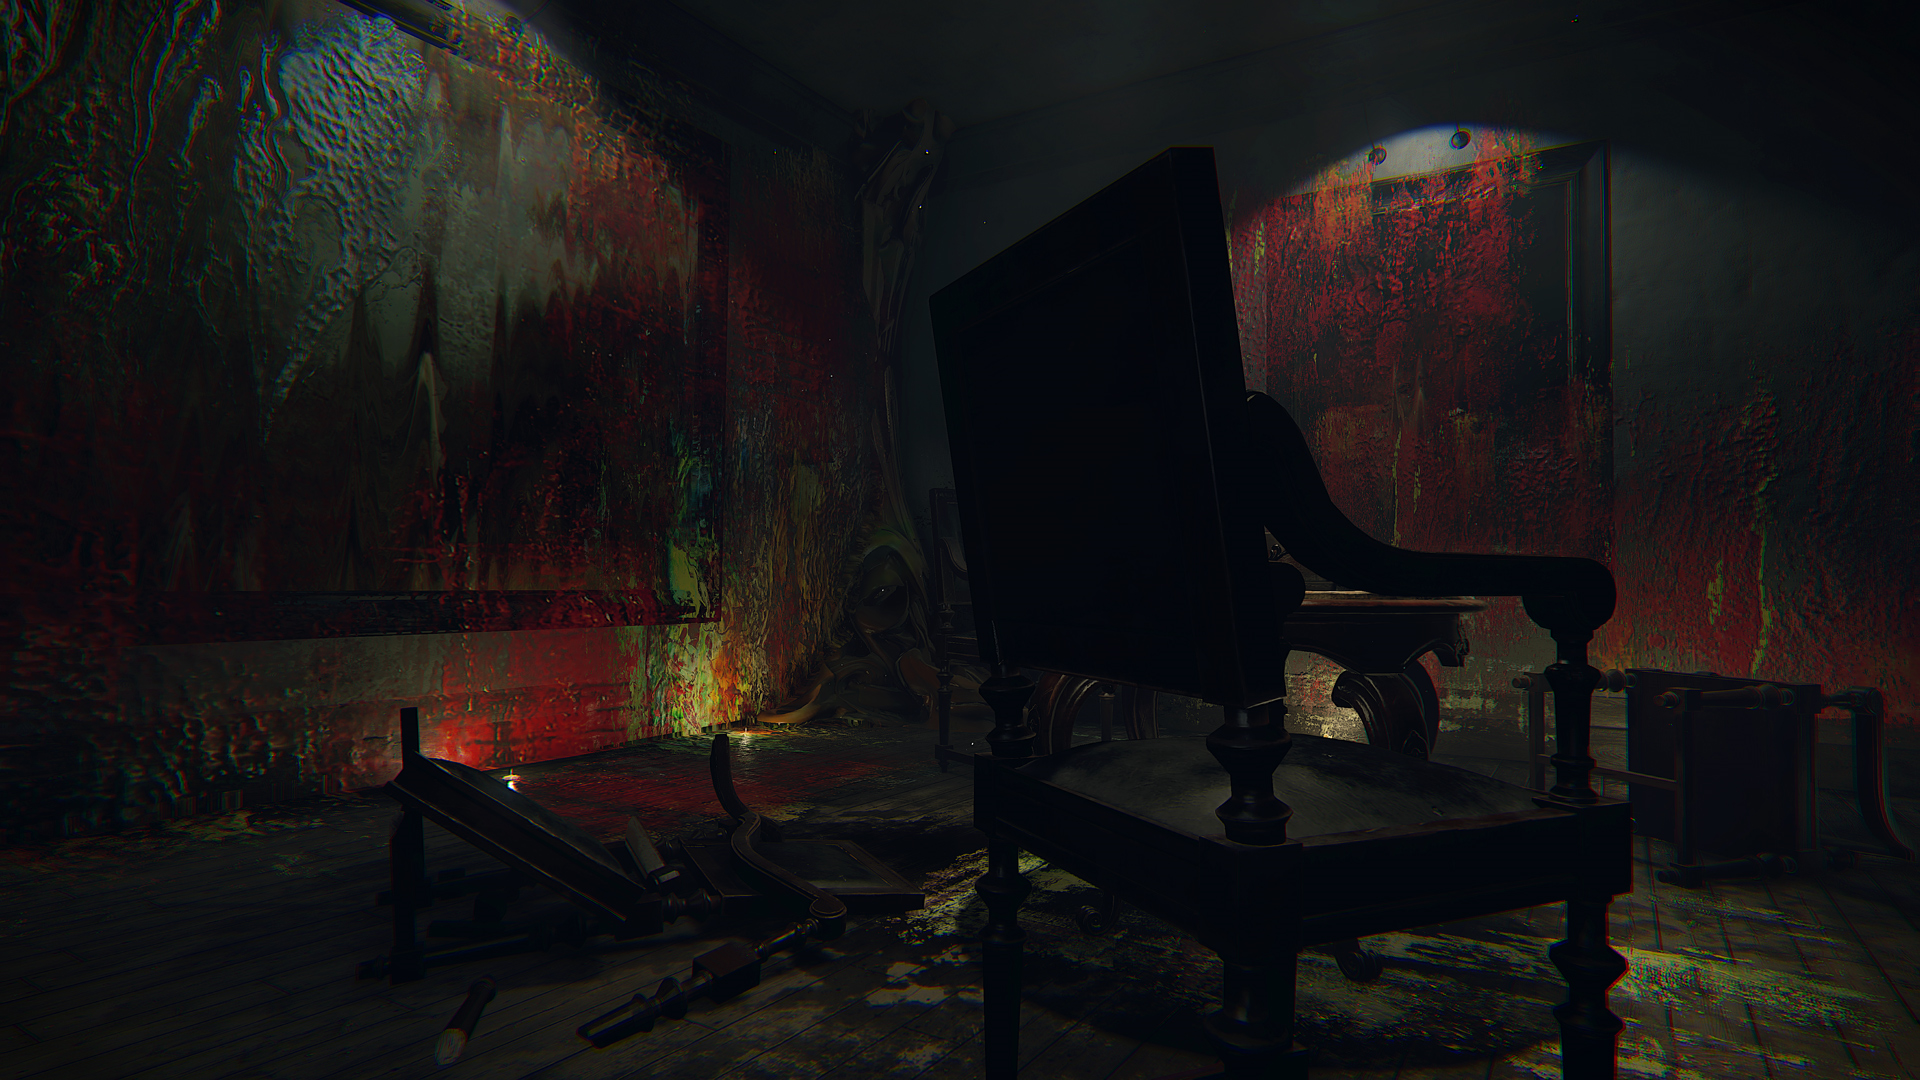 http://presskit.blooberteam.com/layers_of_fear/images/spirit_board.png